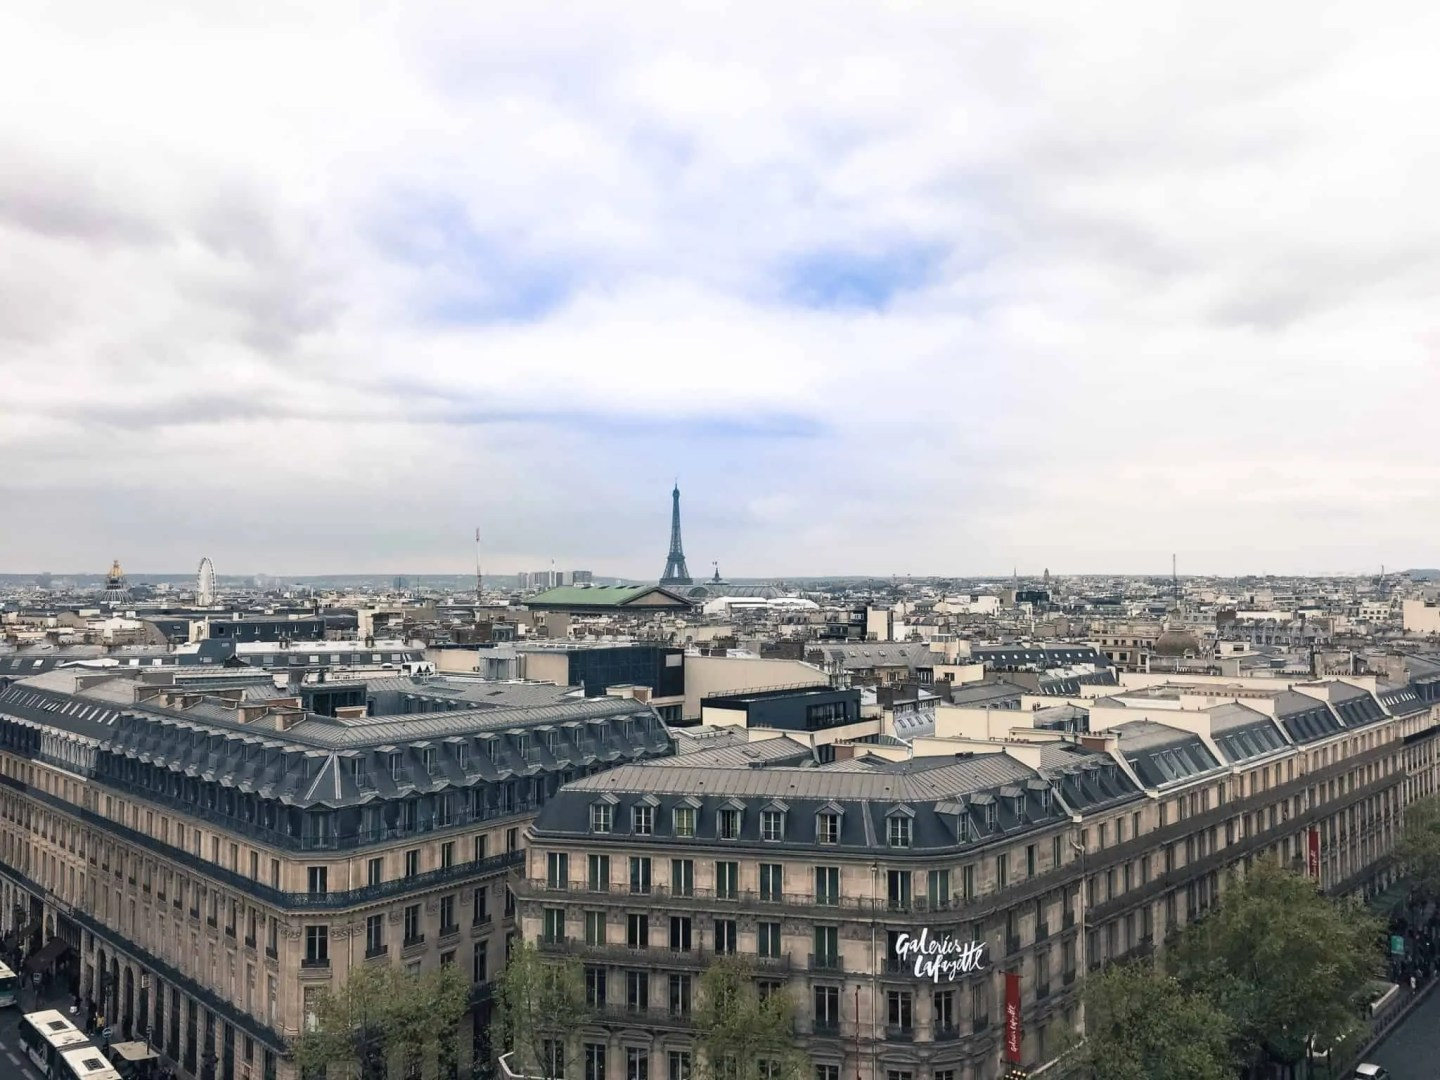 best time to visit paris, where to stay in paris, main tourist attractions in Paris, Champs-Elysées, Arc de Triumph, place de la concorde, top 10 tourist attractions in Paris, Notre Dame